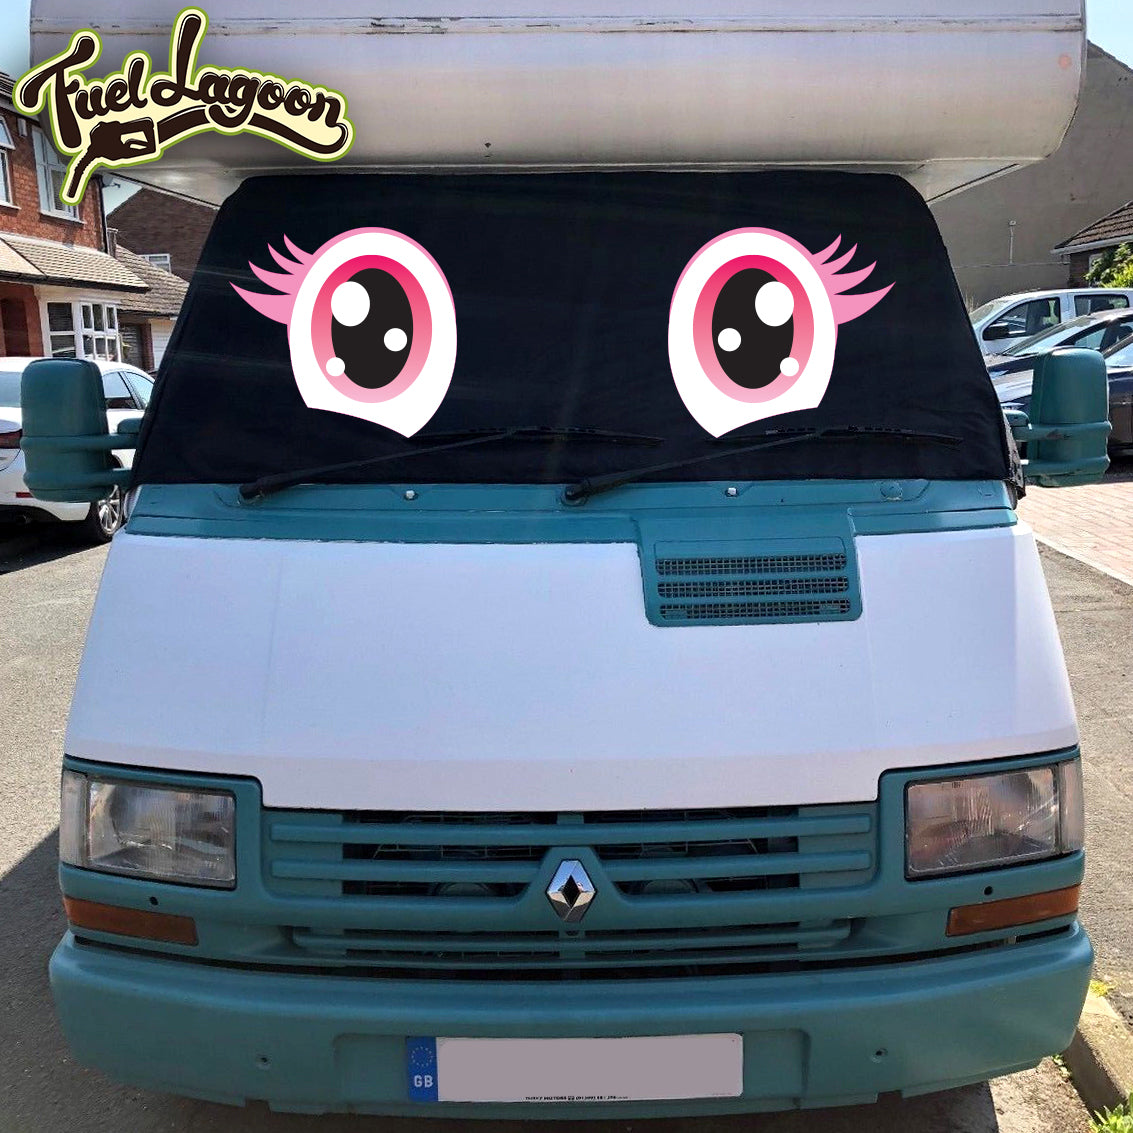 Ducato, Trafic, Talbot Express, J5 Motorhome Screen Wrap 1981-1993 - Trixie Eyes